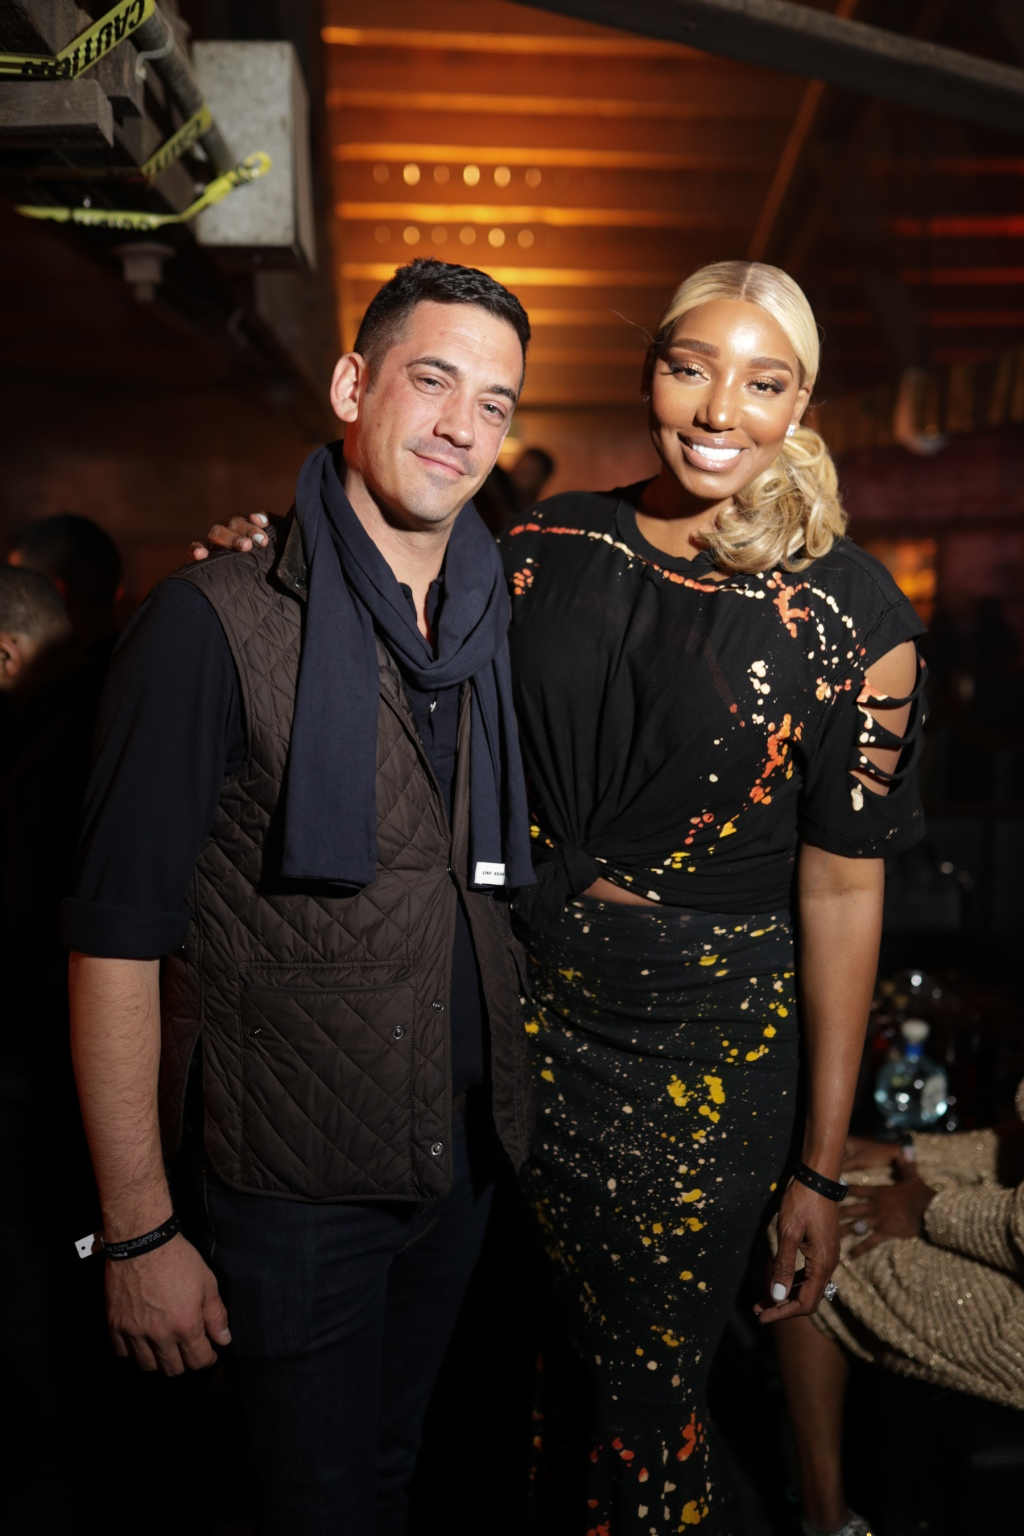 LDV Hospitality's John Meadow hangs out with Real Housewives of Atlanta's Nene Leakes